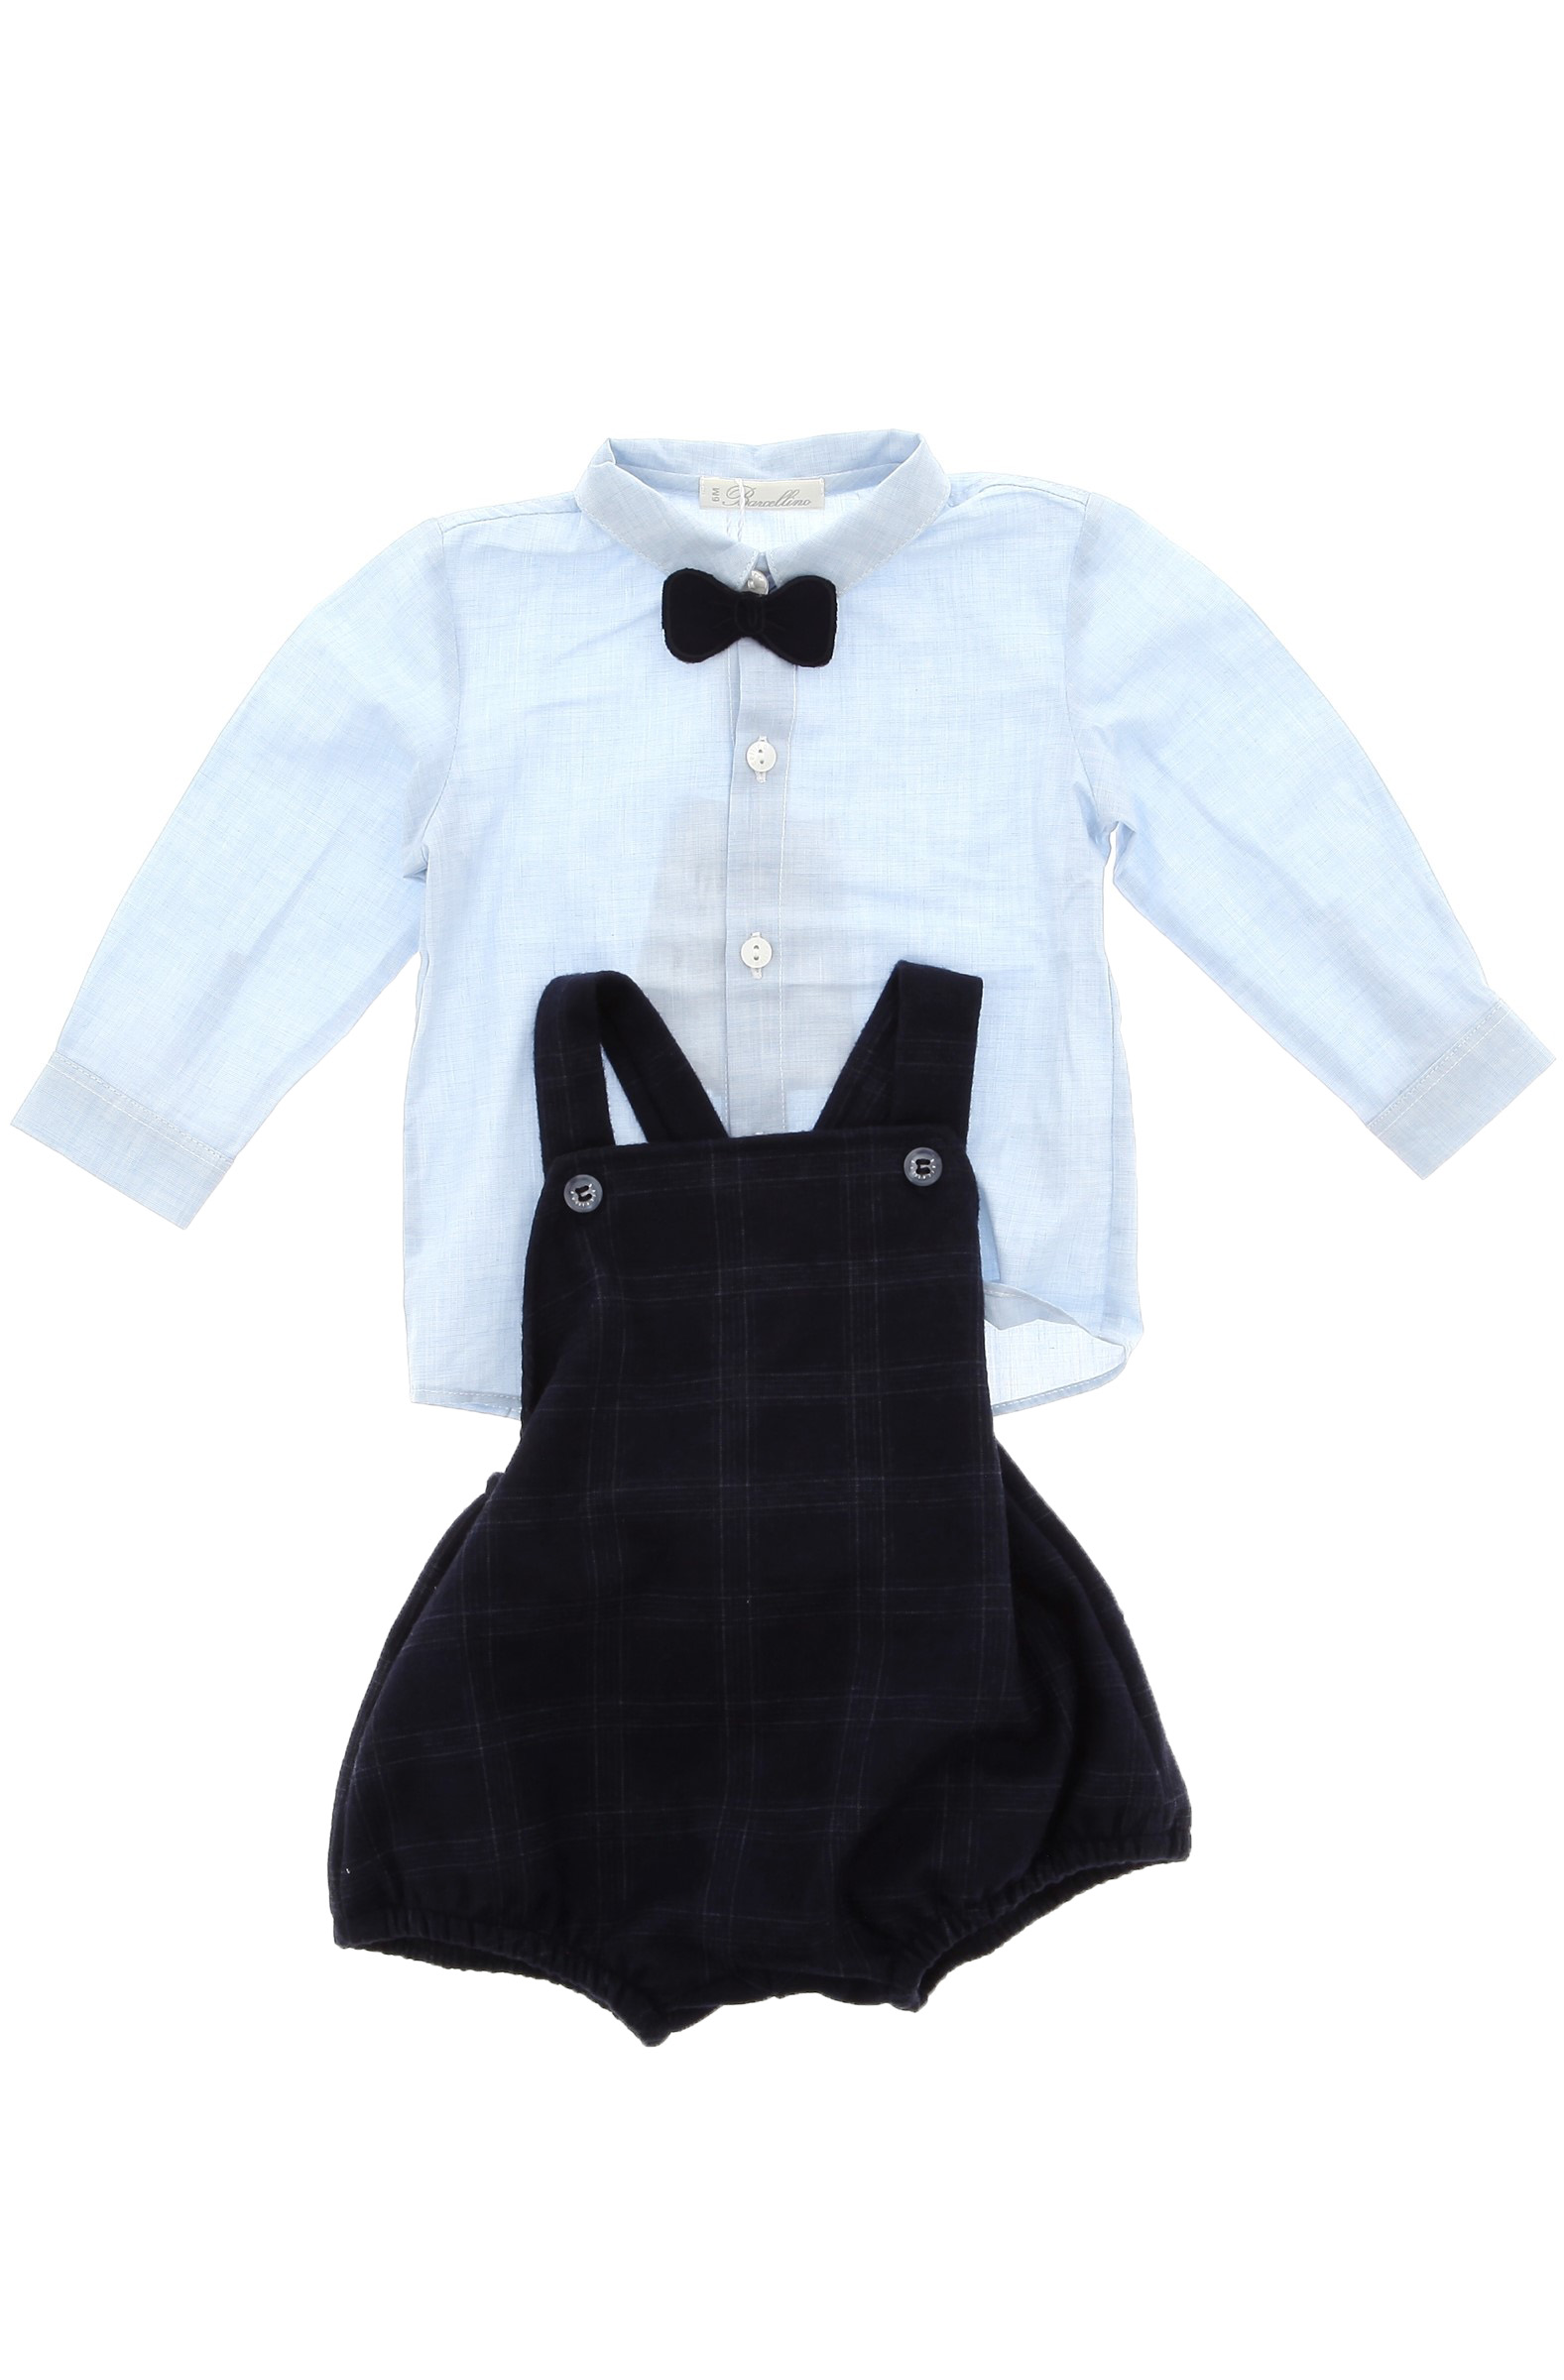 Barcellino suit Barcellino | Baptismal complet | 6627SV